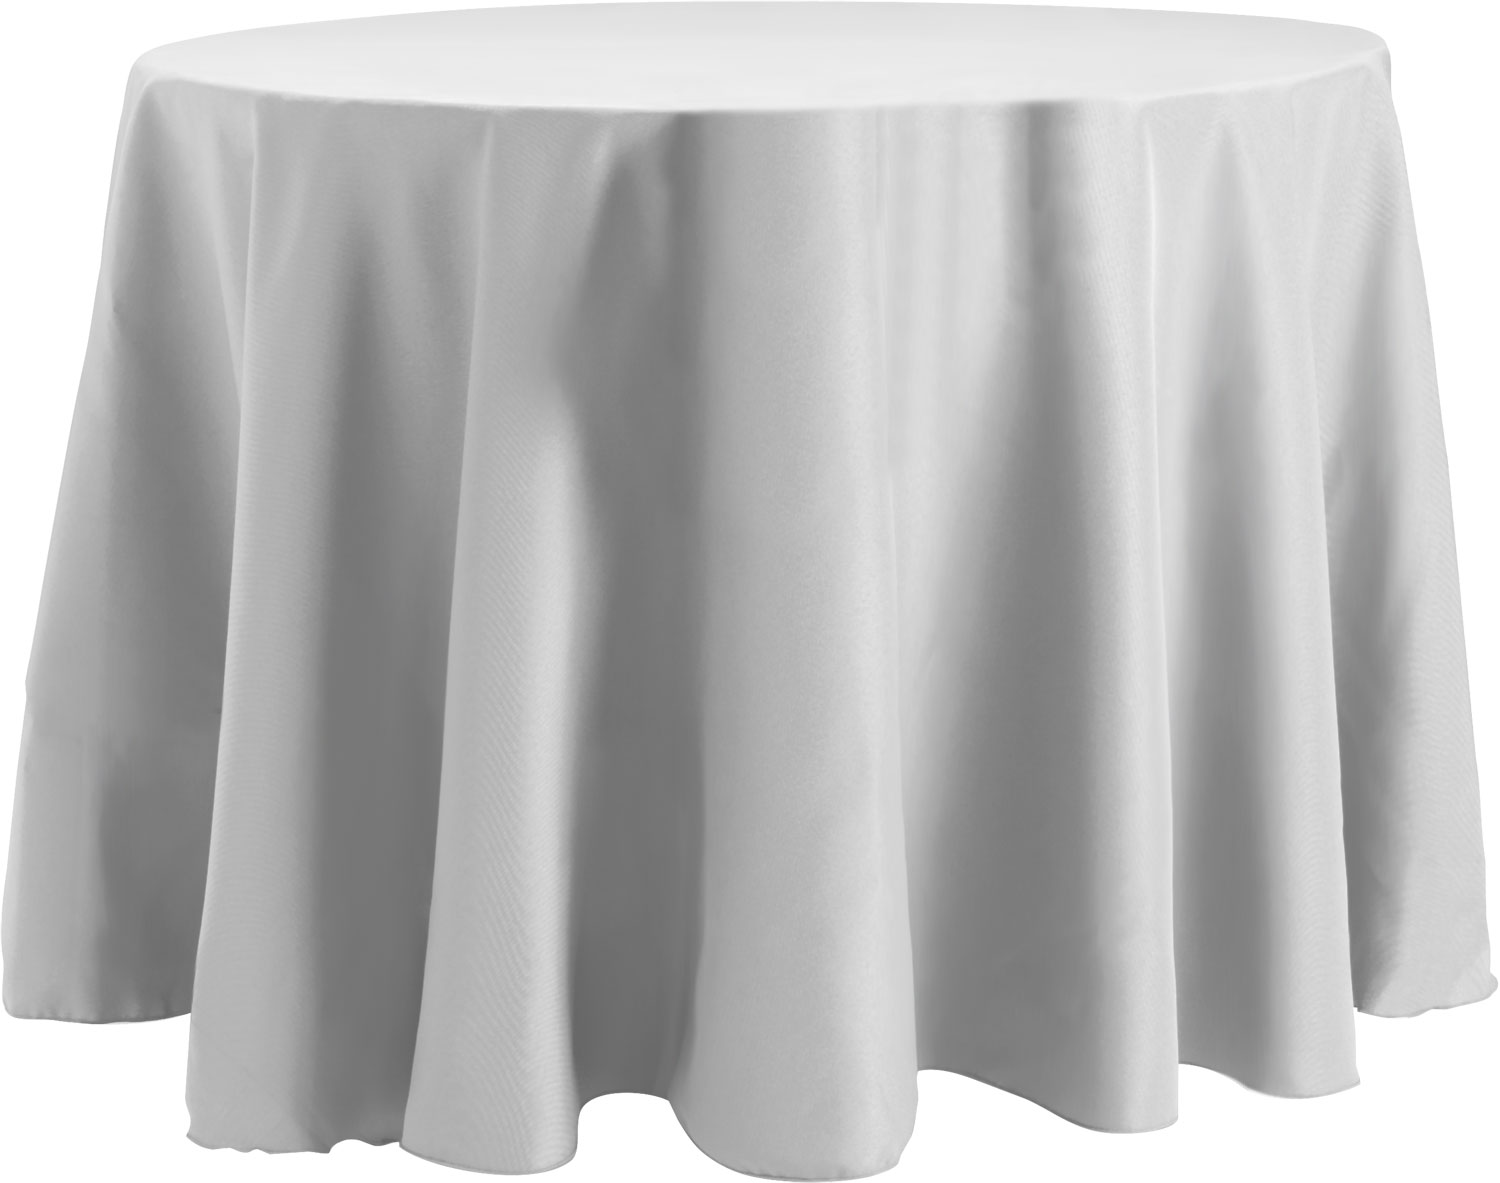 spun polyester solid colors oval tablecloths colorsx artistic accents tablecloth replacement cushions narrow sofa side table real wood flooring for lamp hammered metal coffee door